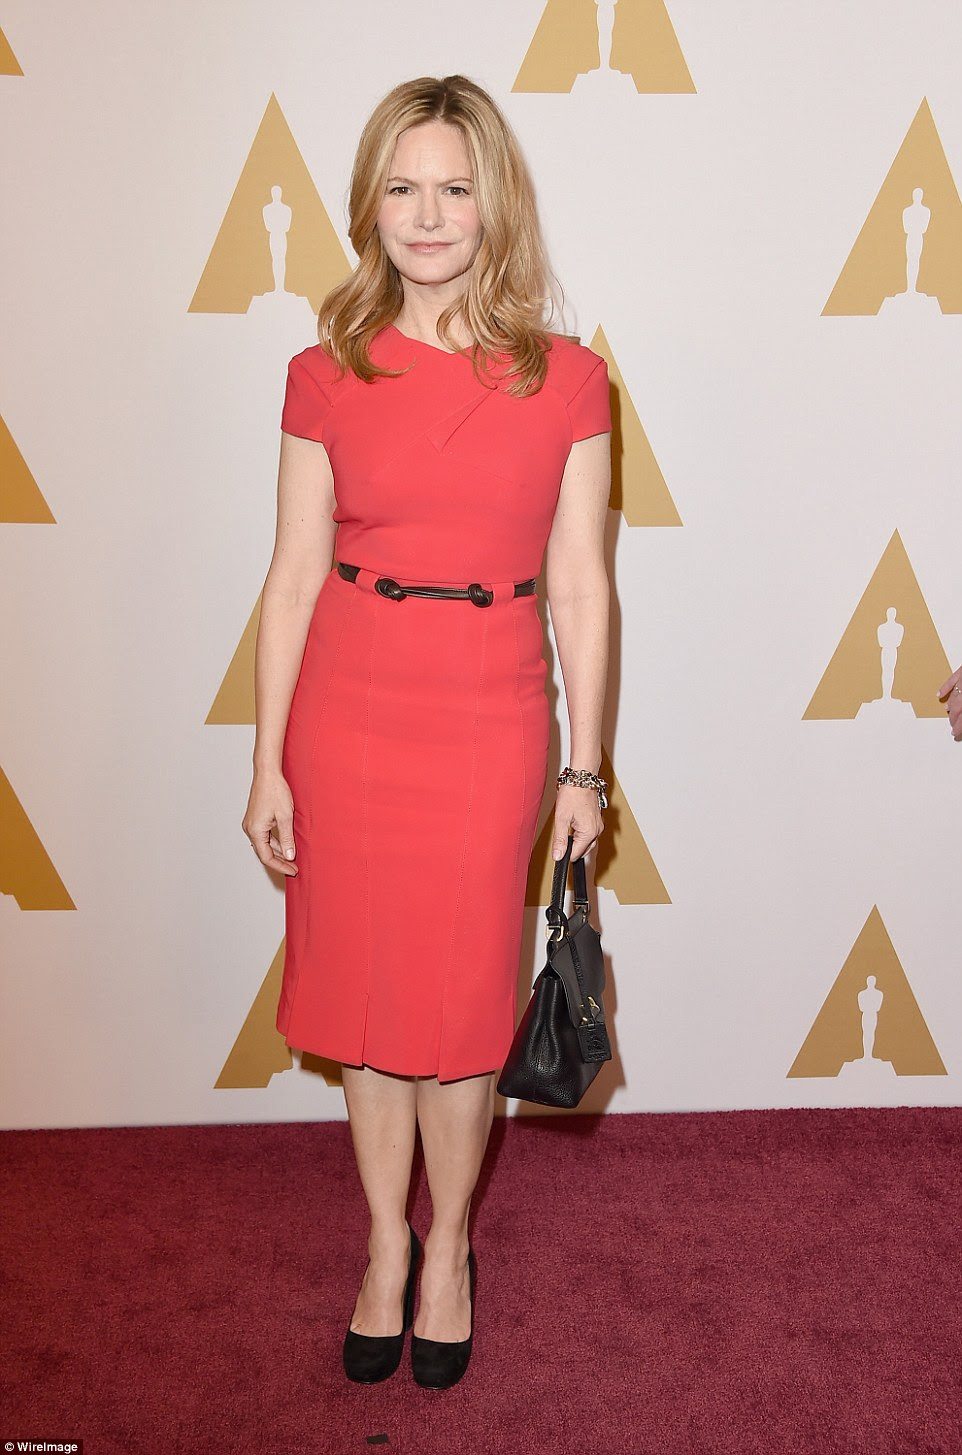 So ladylike: Jennifer Jason Leigh wore a coral colored dress with black pumps and purse - she is nominated for Hateful Eight